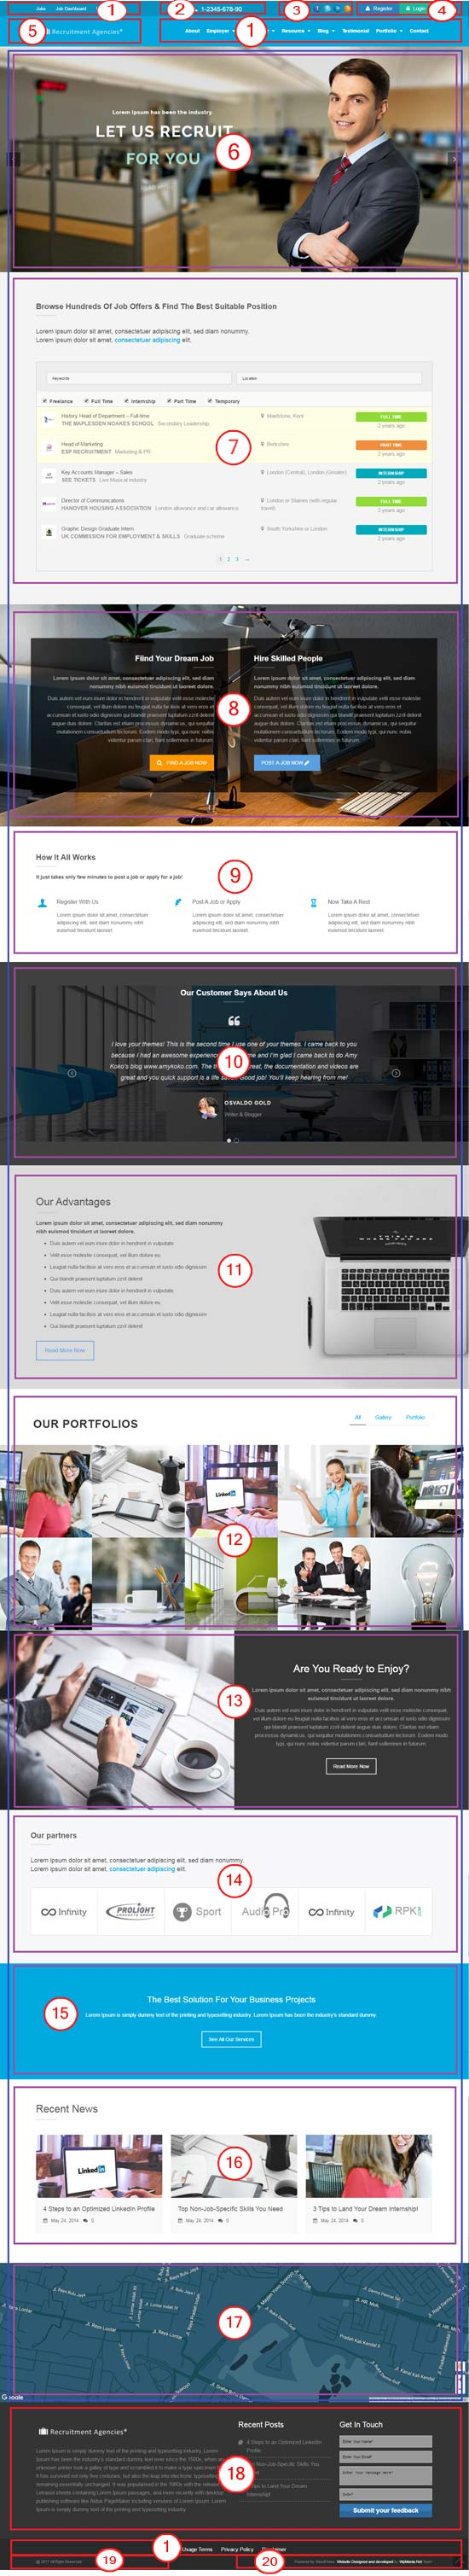 Recruitment Agencies WordPress Theme Documentation